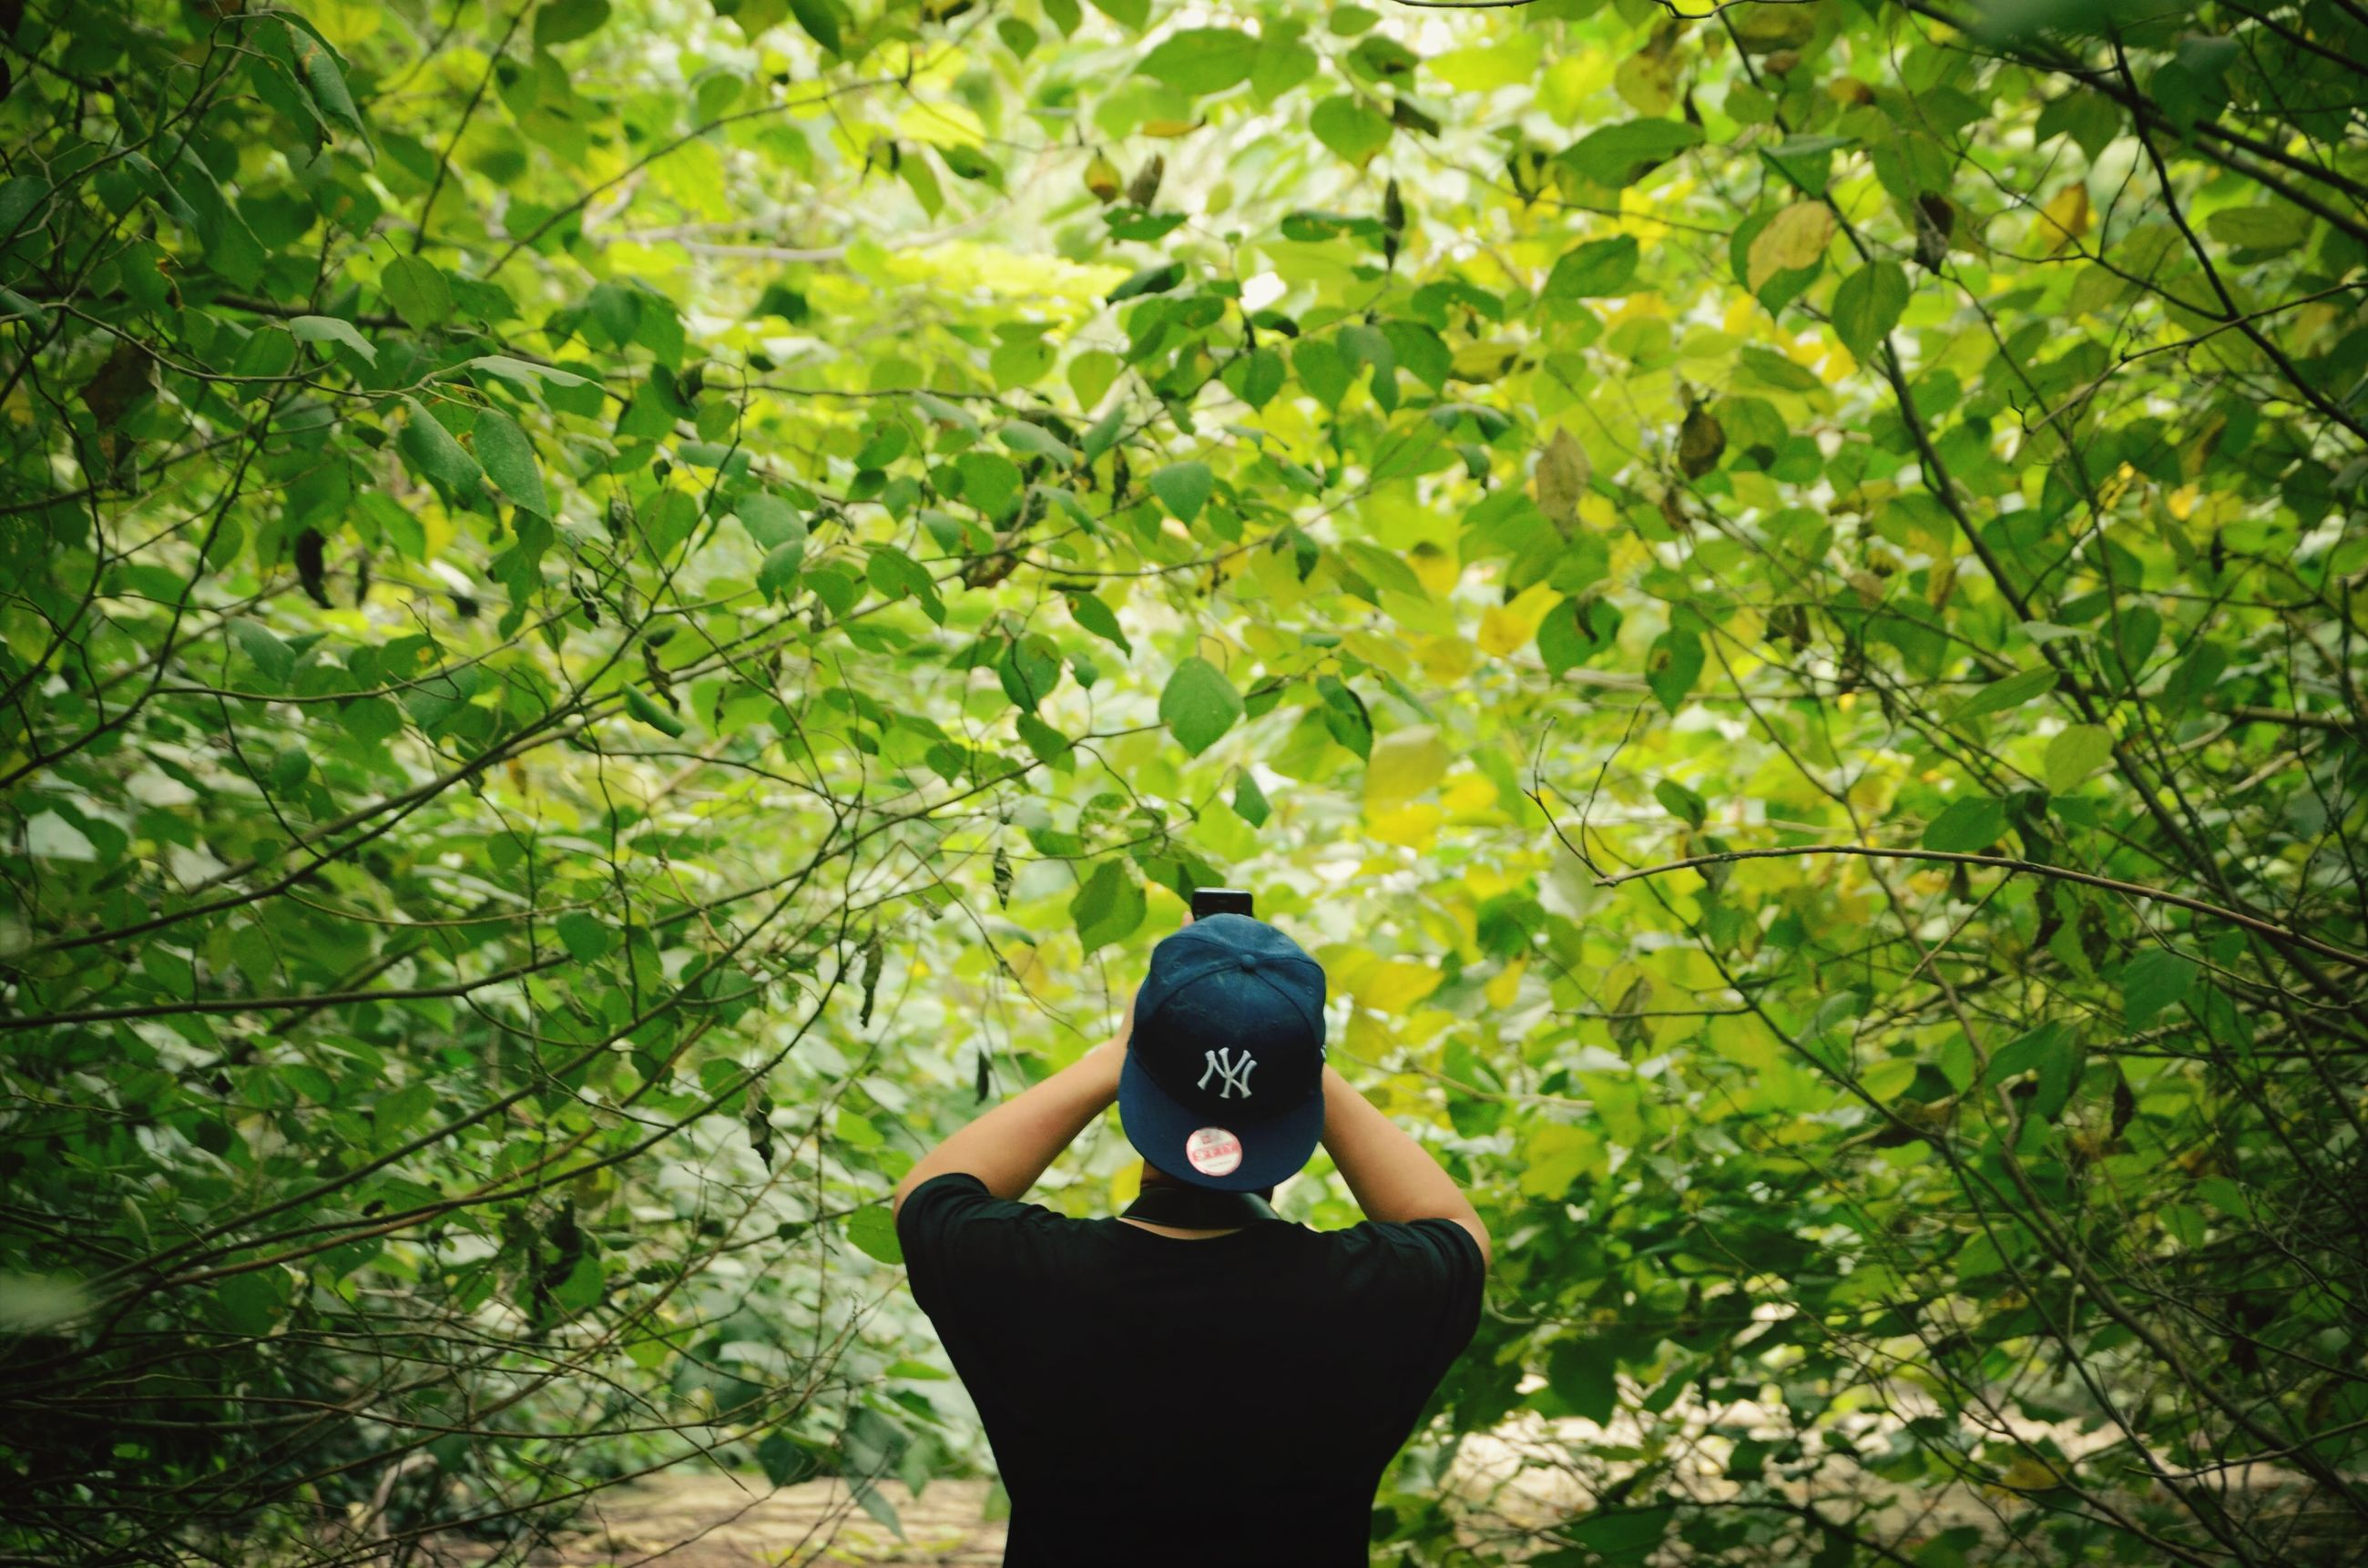 tree, lifestyles, standing, growth, leaf, branch, green color, leisure activity, nature, forest, low section, person, men, personal perspective, plant, casual clothing, outdoors